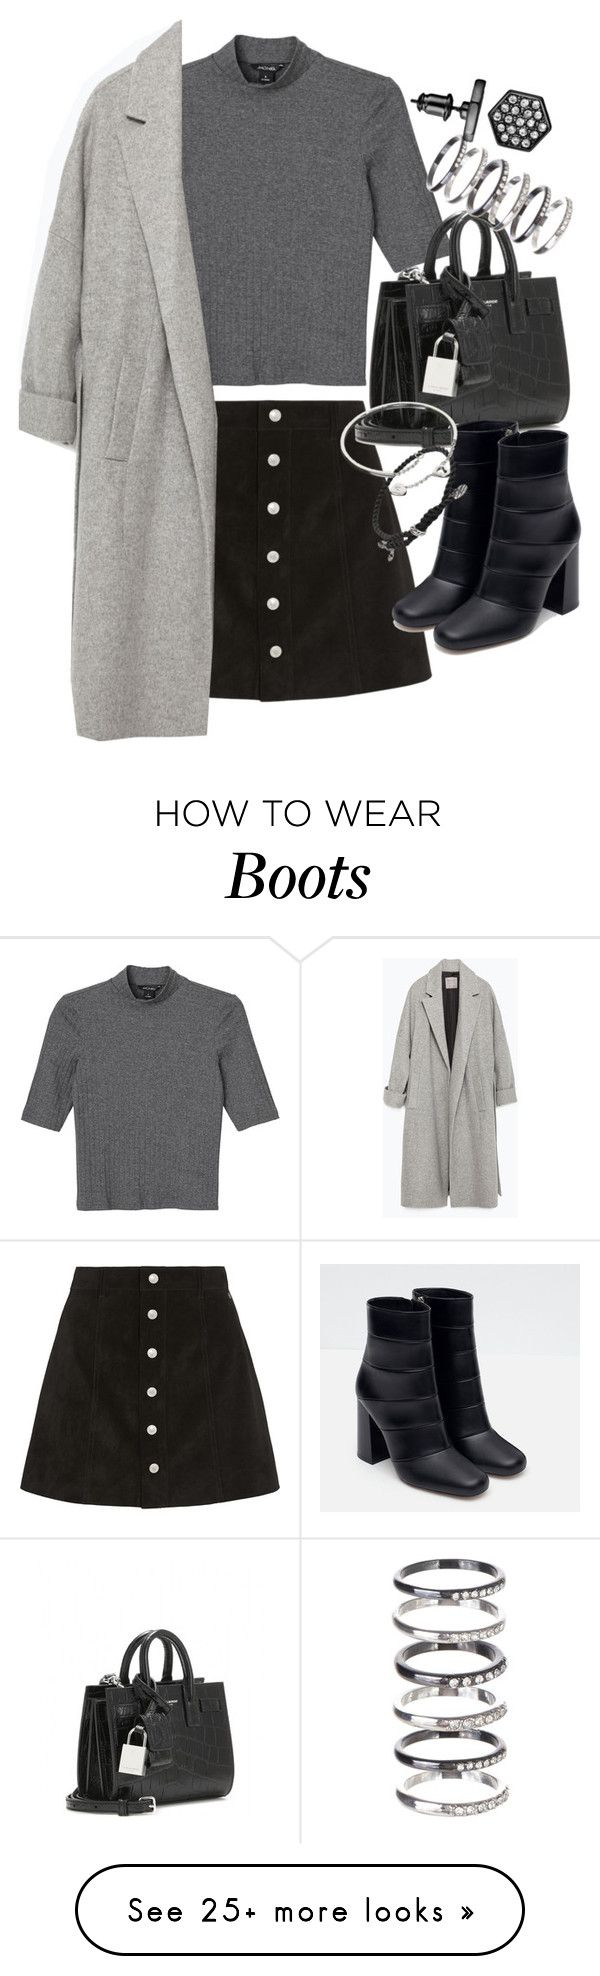 """Untitled #19332"" by florencia95 on Polyvore featuring AG Adriano Goldschmied, Monki, Zara, Yves Saint Laurent, M.N.G, David Yurman, Cartier and Simply Vera"